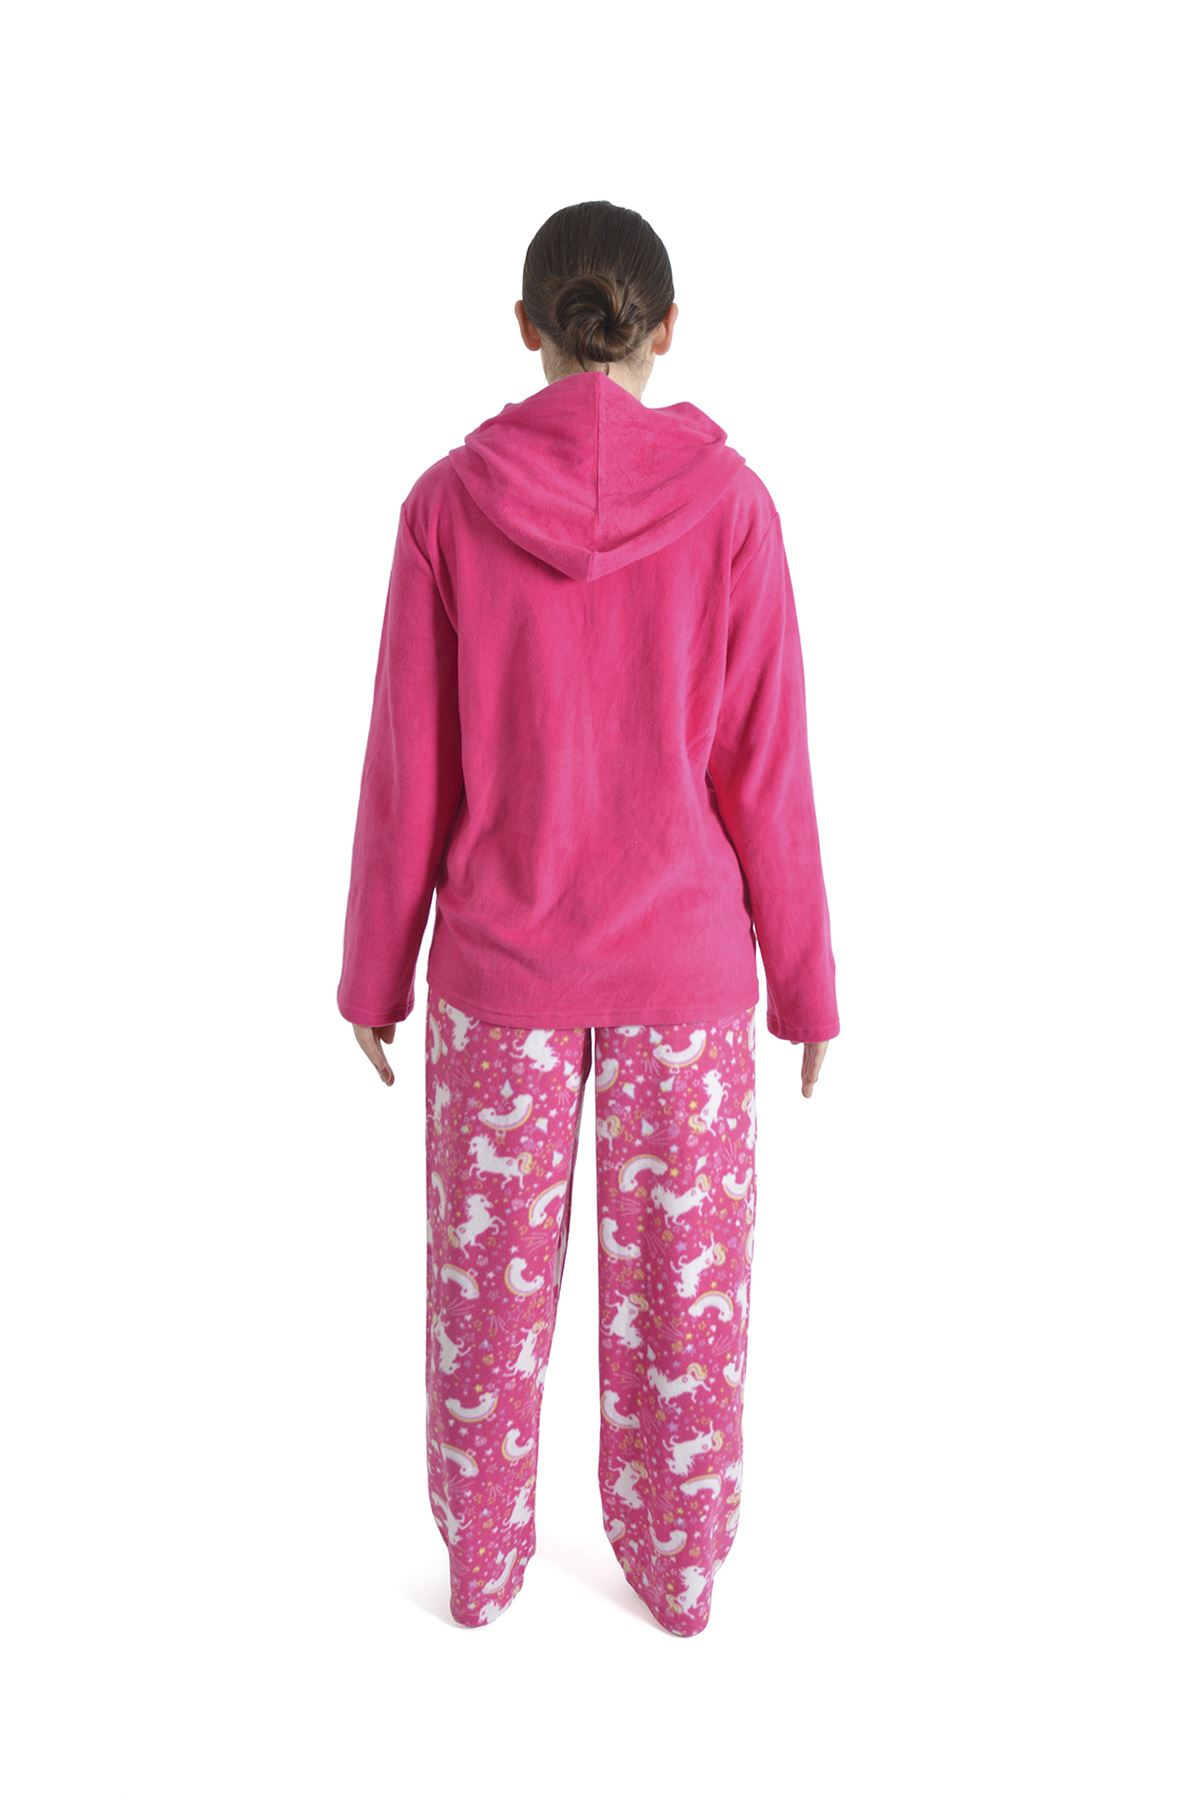 Women-039-s-Unicorn-Hooded-Pyjamas-Fleece-Top- acf2c4b0c